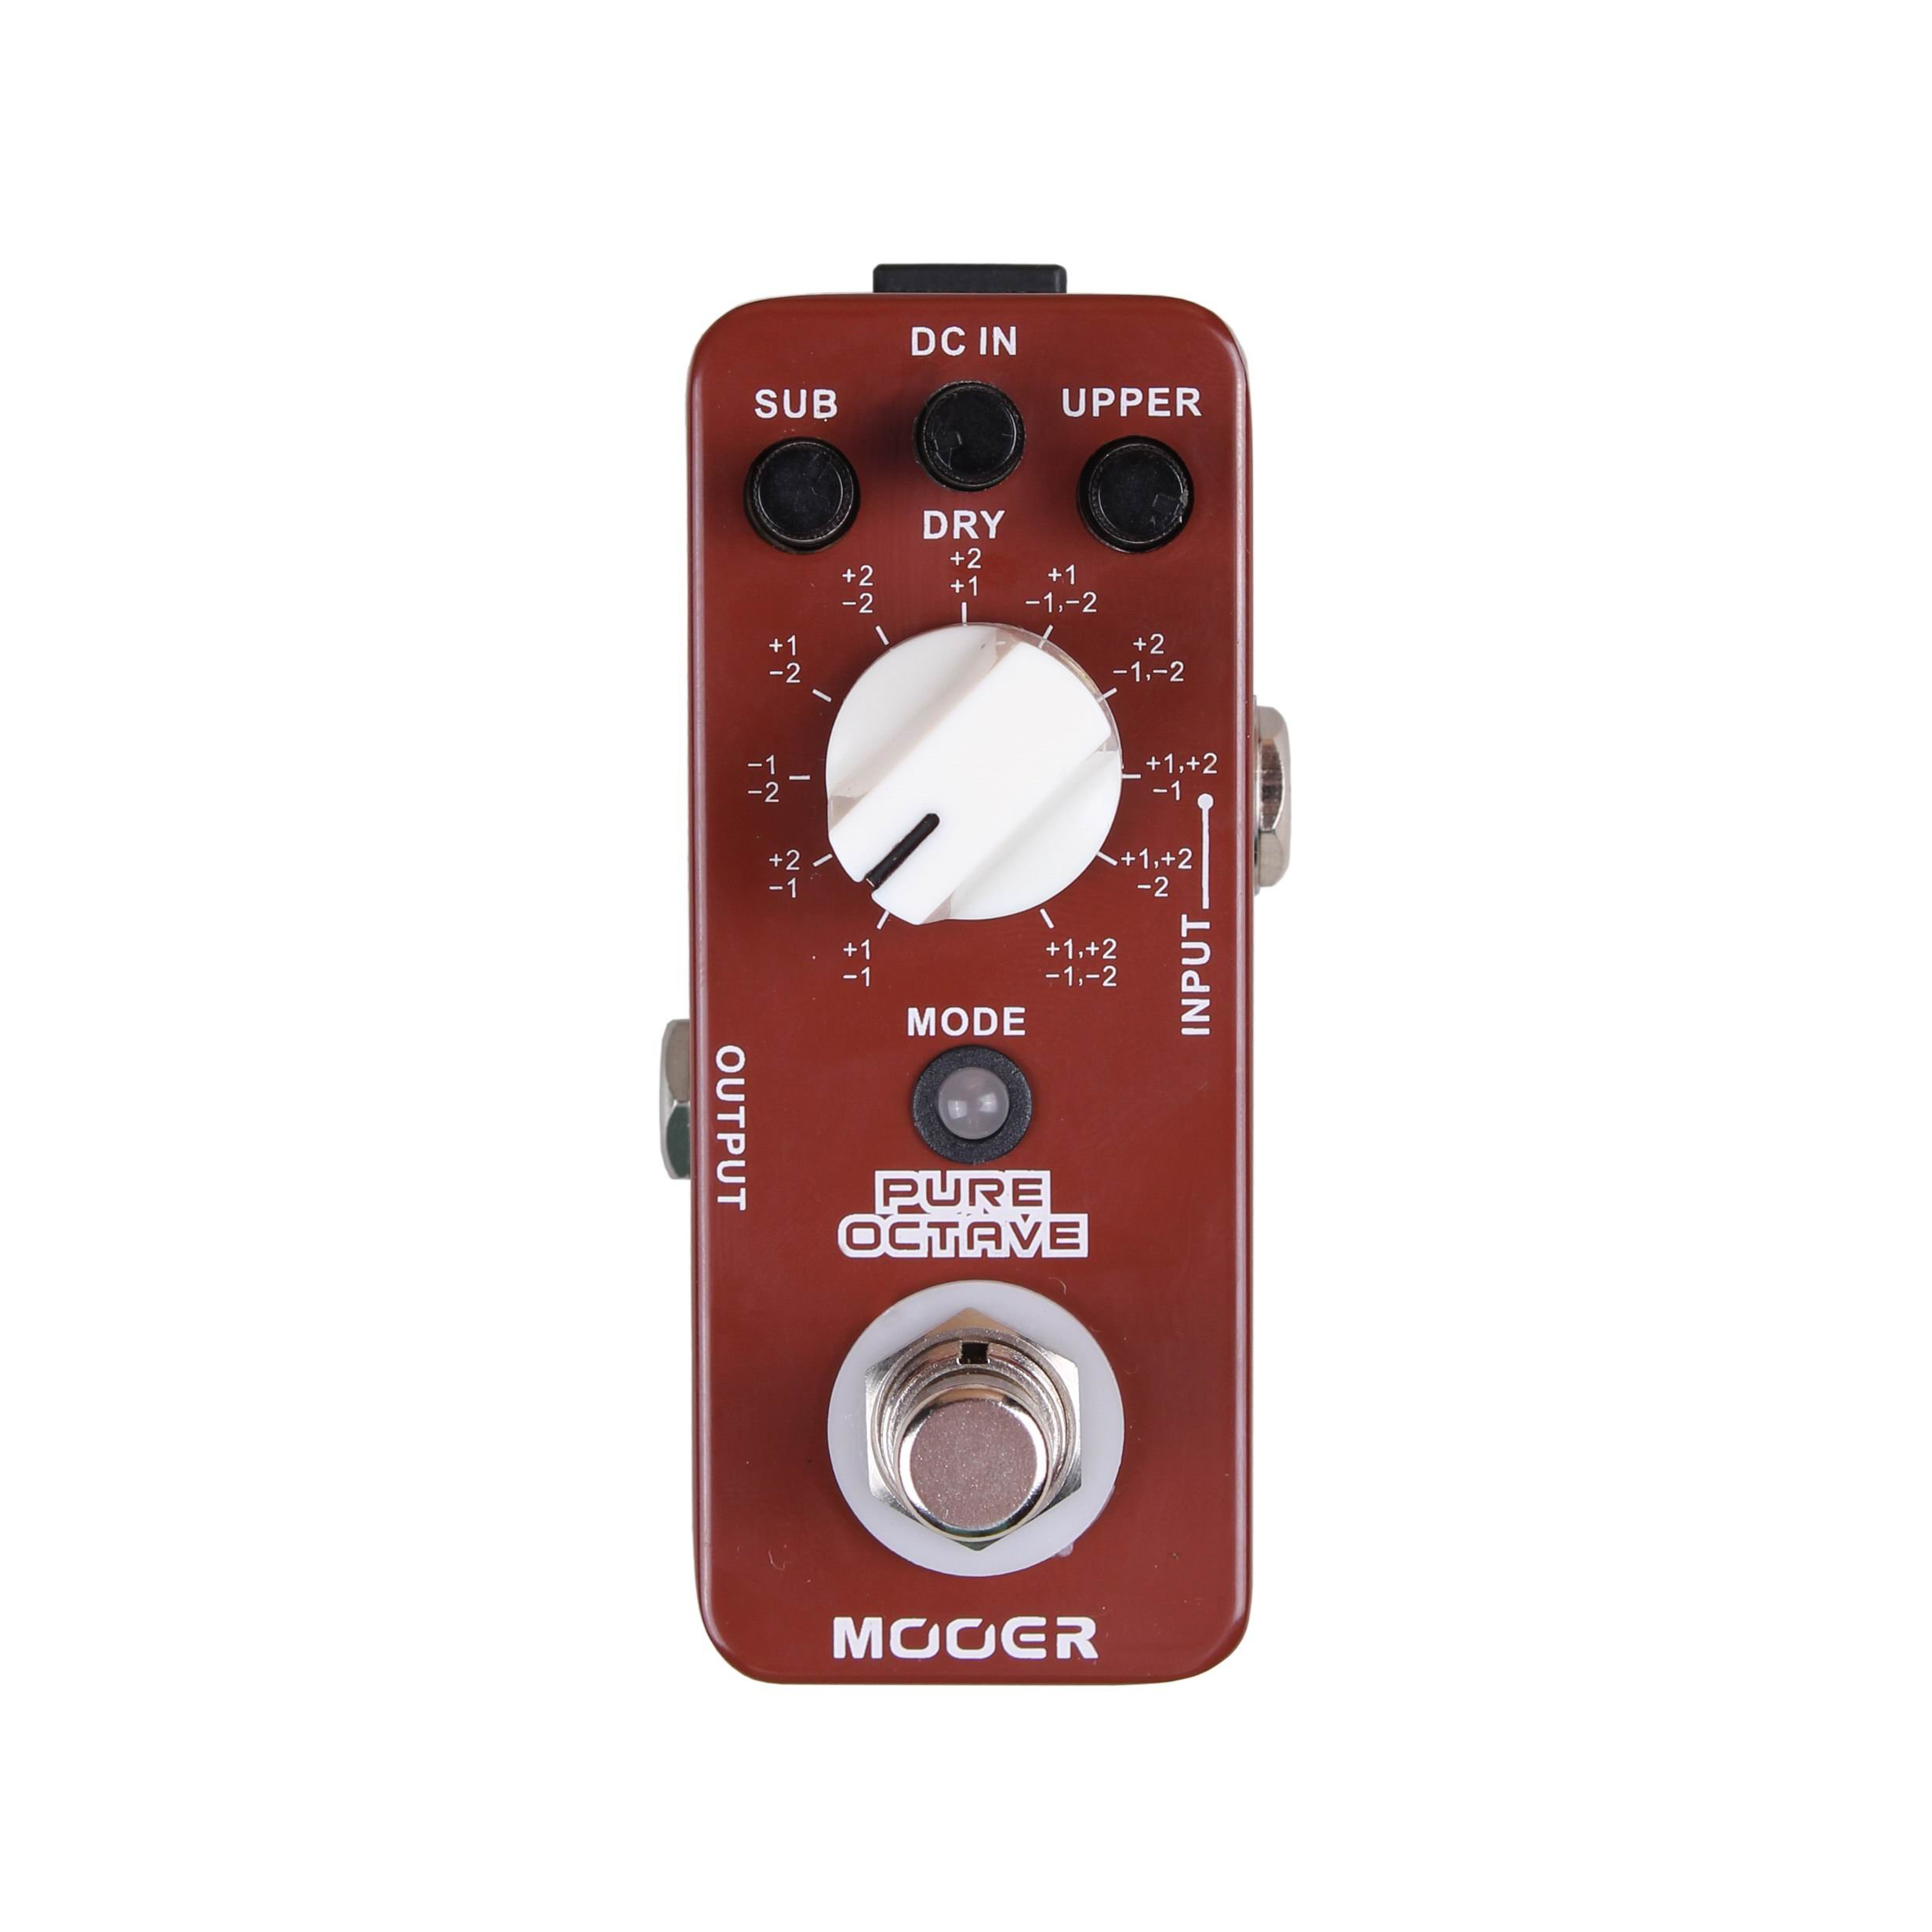 Mooer MOC1 Pure Octave Guitar Single Effect by MOOER